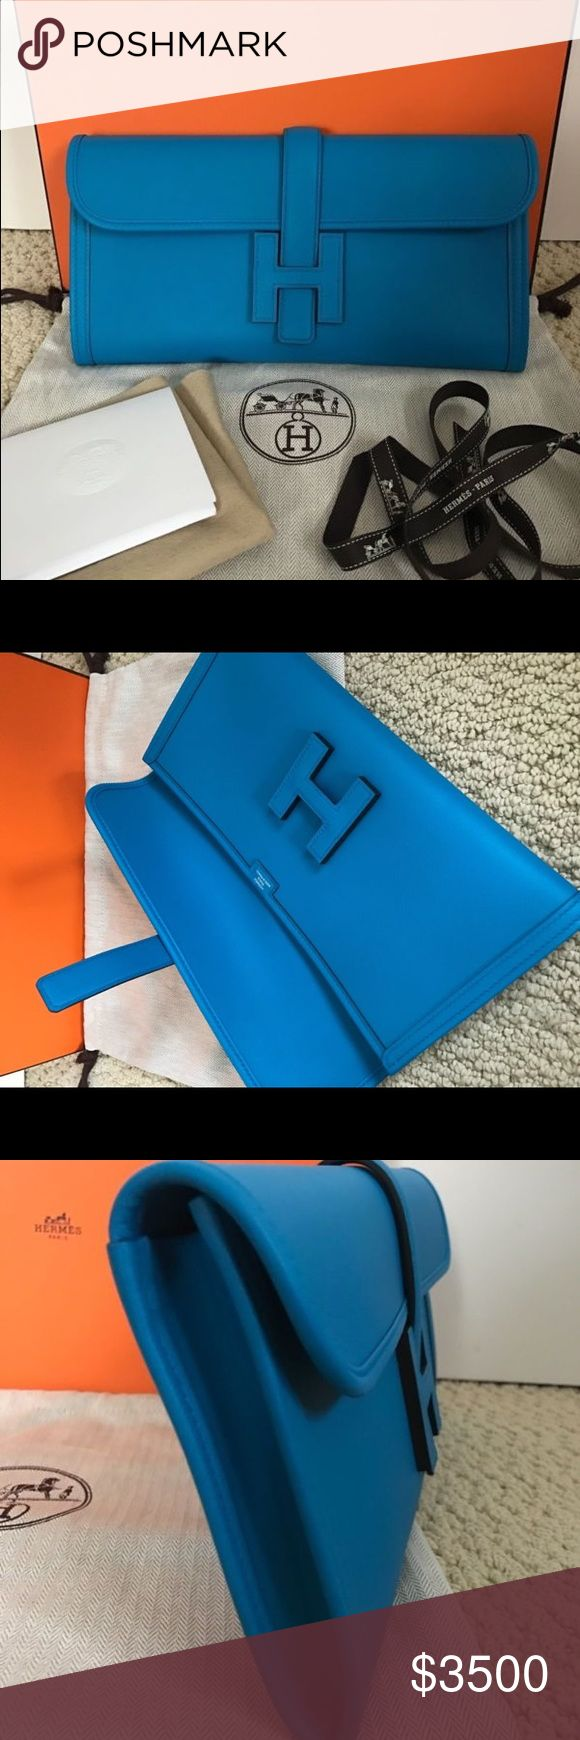 Hermes Swift Leather H Logo Clutch Handbag Brand New 100% Authentic Hermes Jige Zanzibar Blue Swift Leather H Logo Clutch Handbag Hermes Bags Shoulder Bags